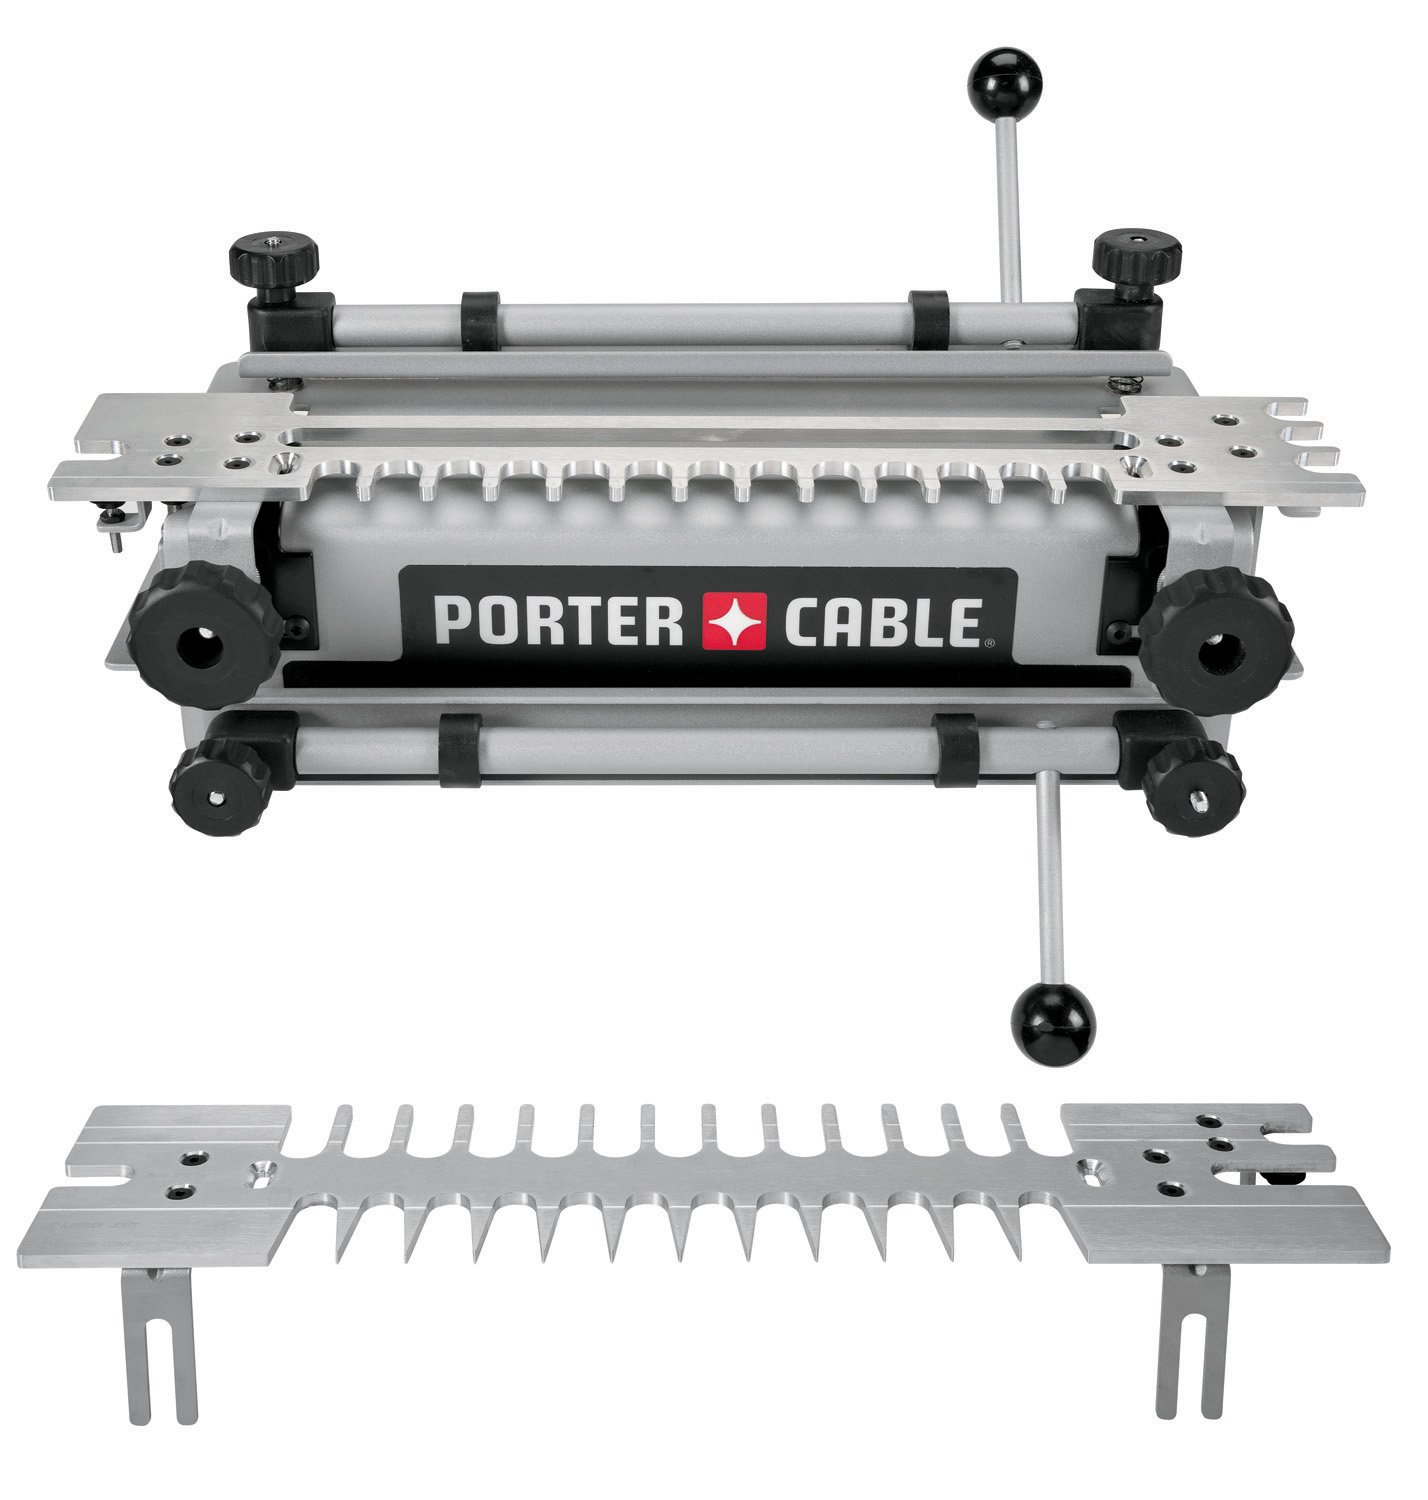 PORTER-CABLE 4212 Dovetail Jig